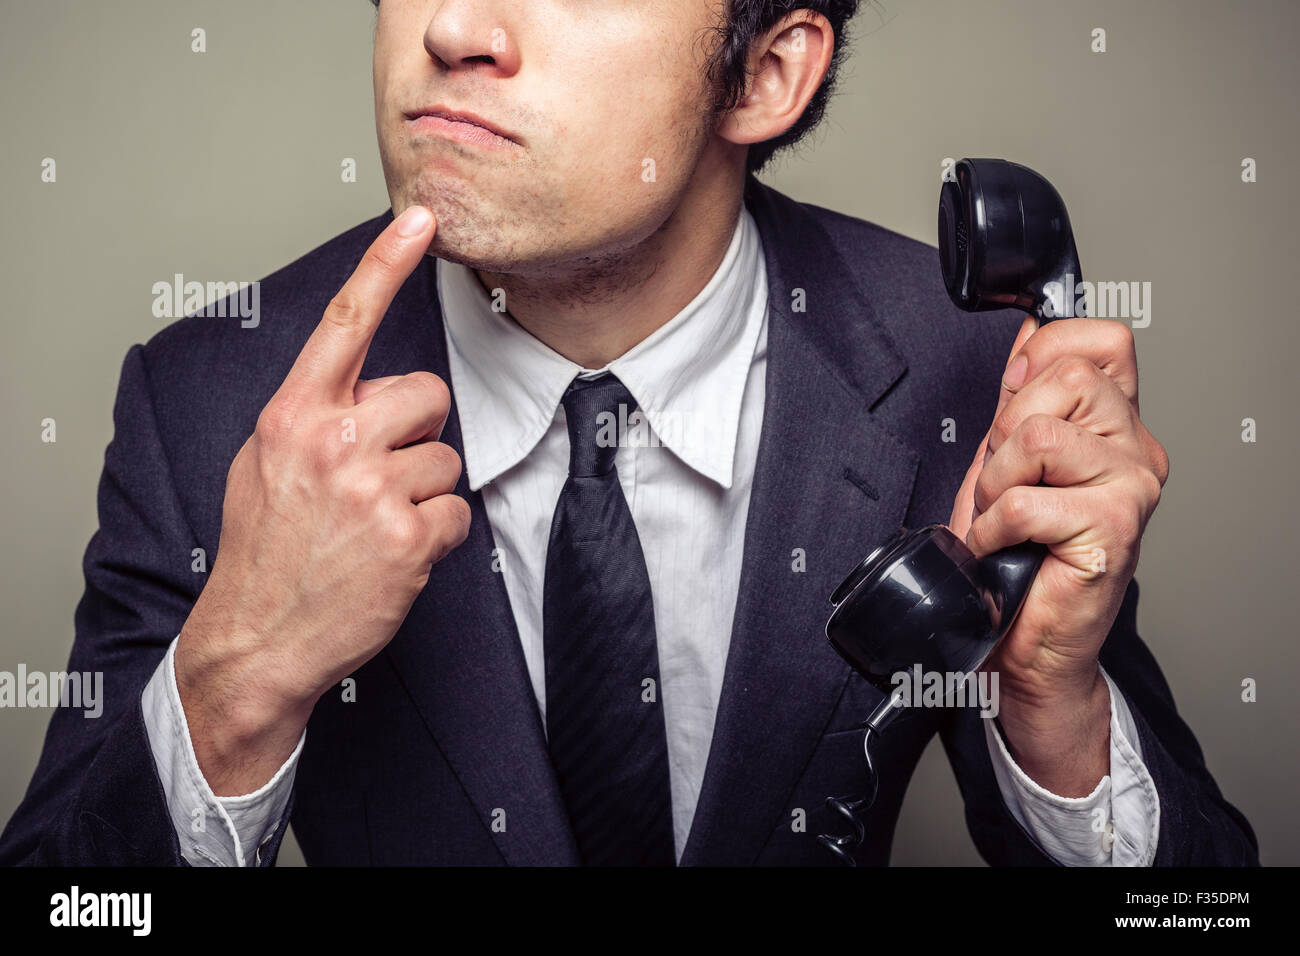 Young businessman is on the phone and is thinking about what to say - Stock Image